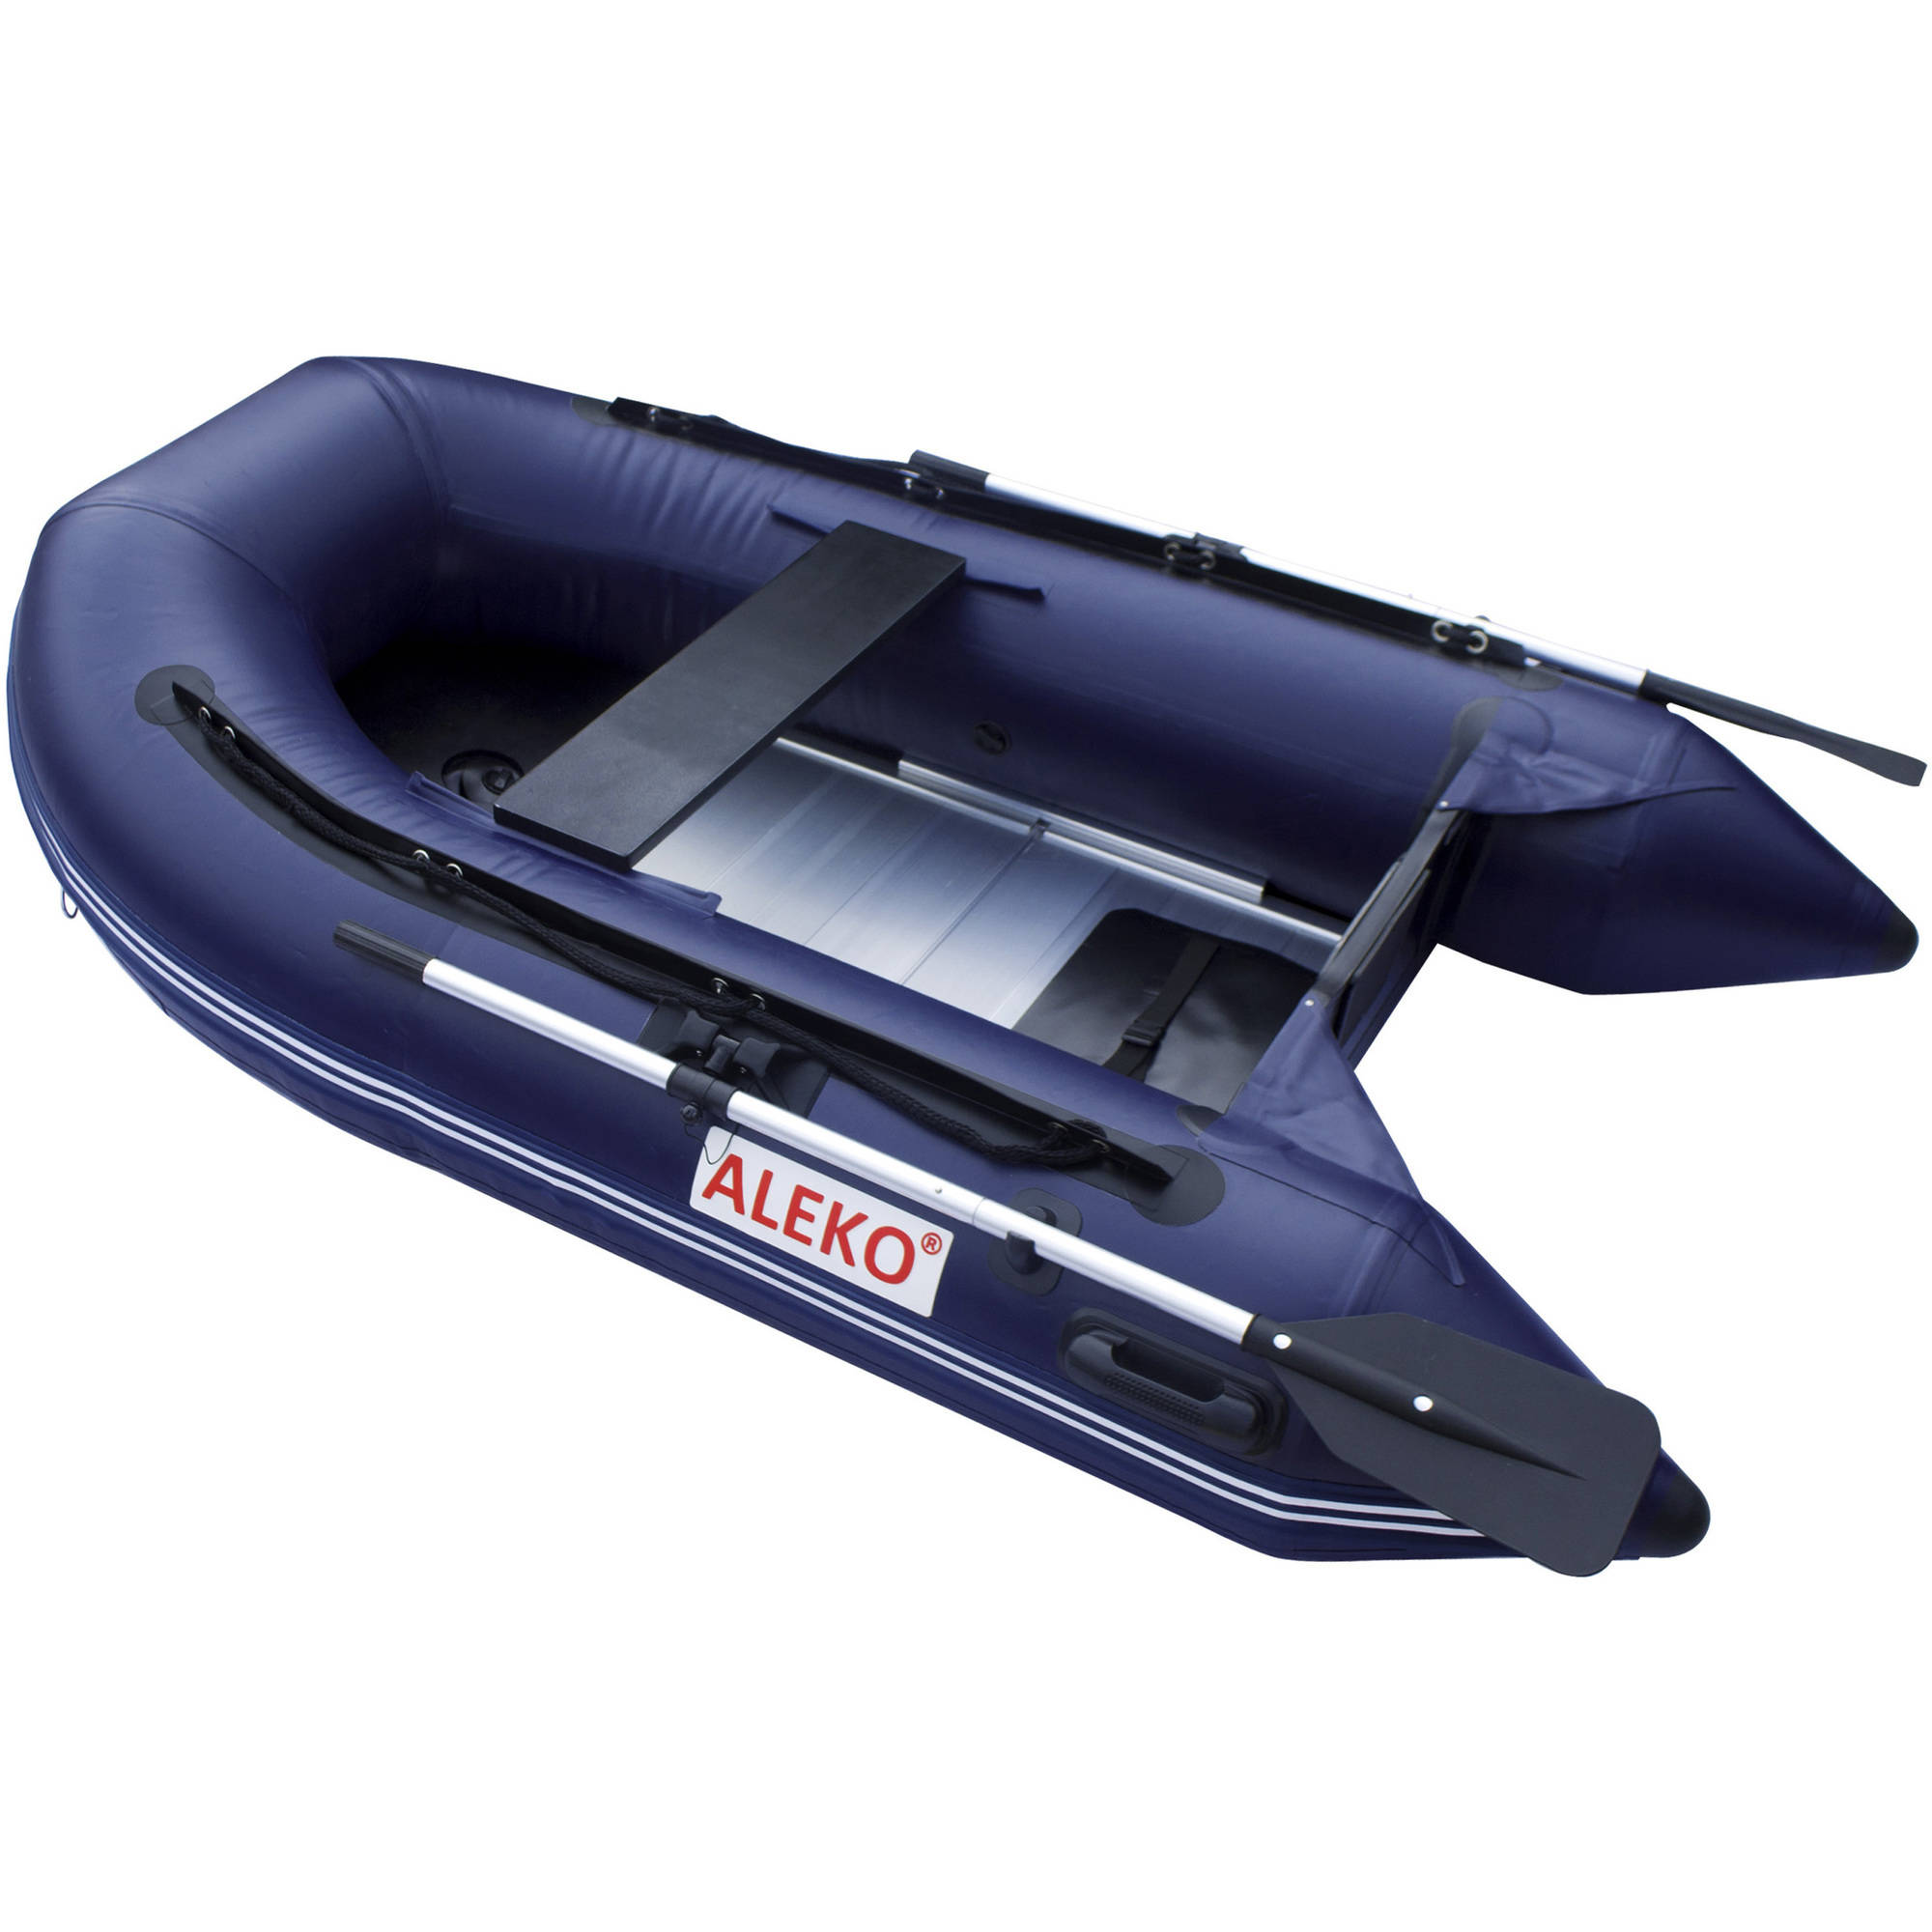 ALEKO Inflatable Boat Aluminum Floor 8.4 Feet Blue by ALEKO